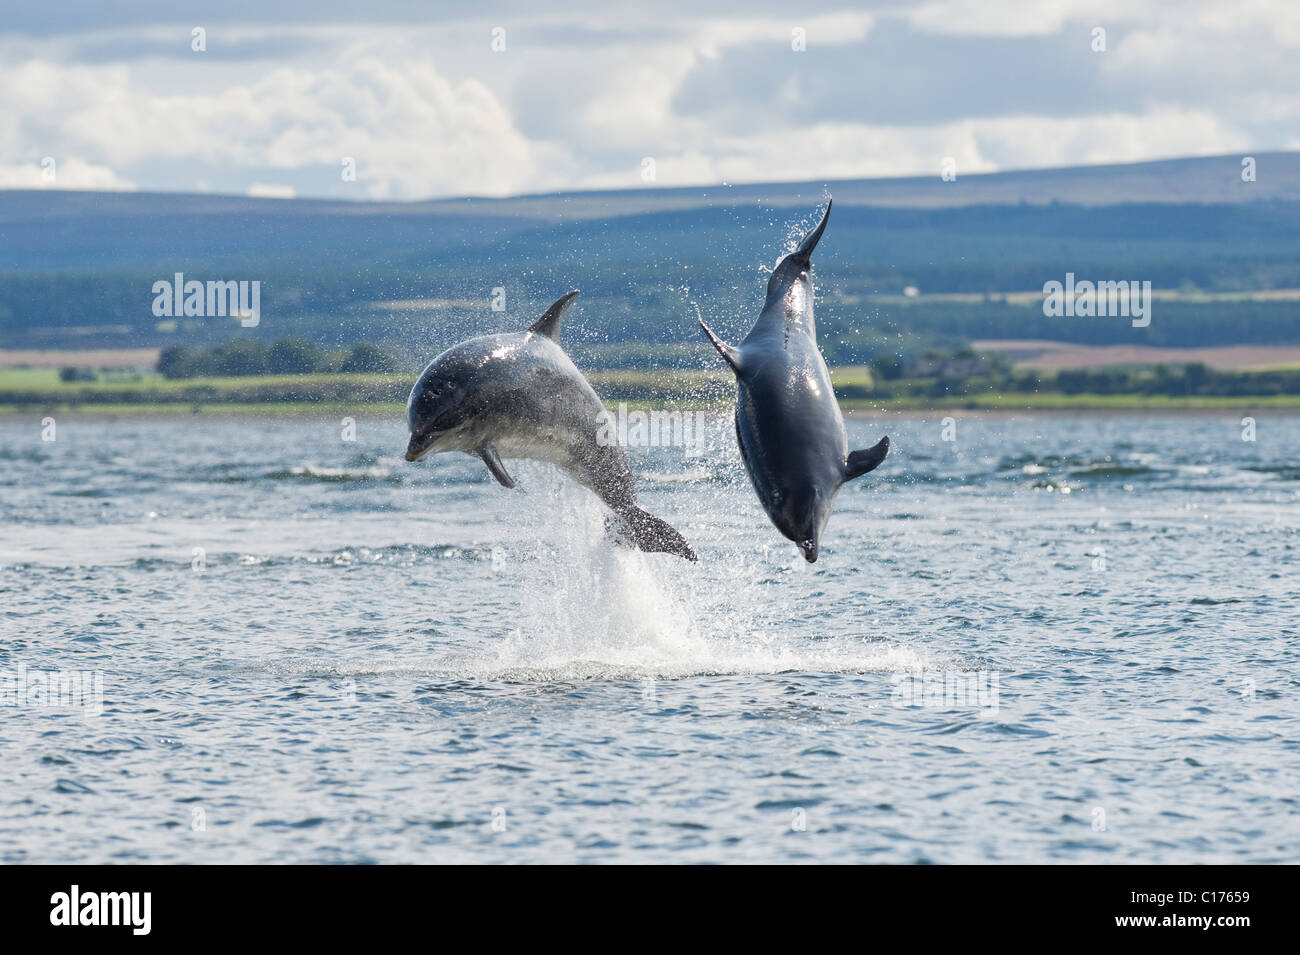 Bottlenose dolphin (Tursiops truncatus) , Moray firth, Scotland, UK. - Stock Image